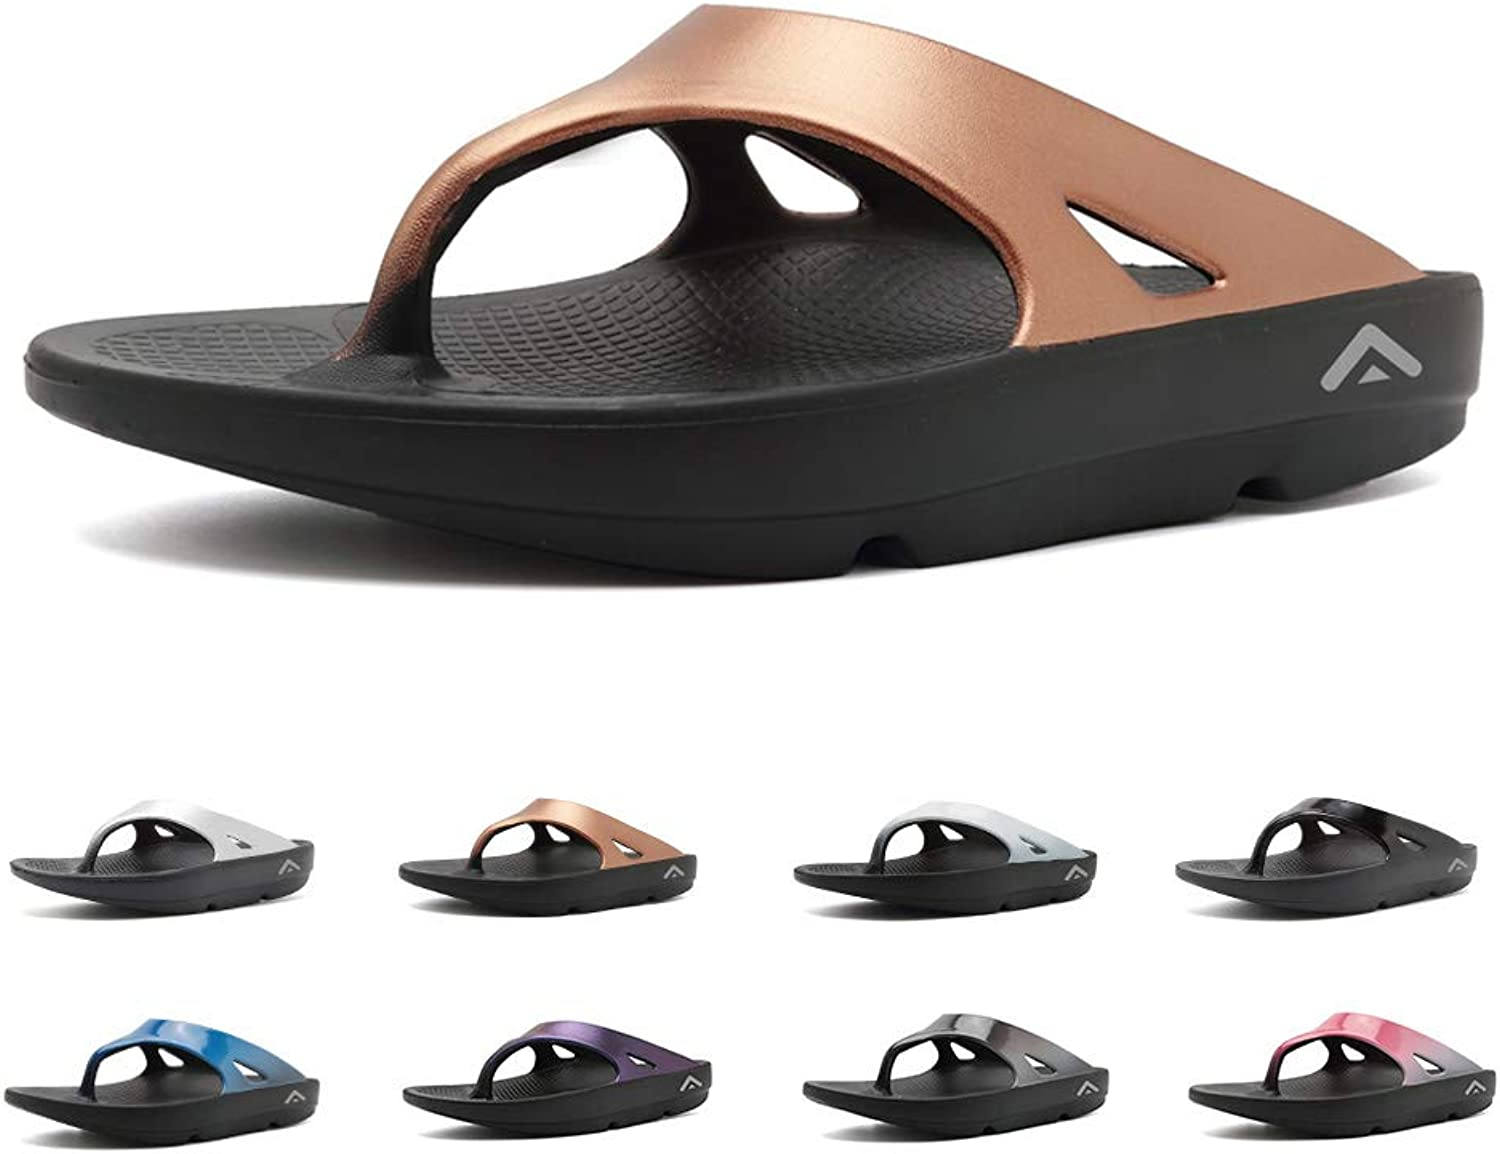 FANTURE Men & Women's Flip FlopsThong Foot Pain Relief Arch Support Sandals Recovery Ultra Soft Slippers